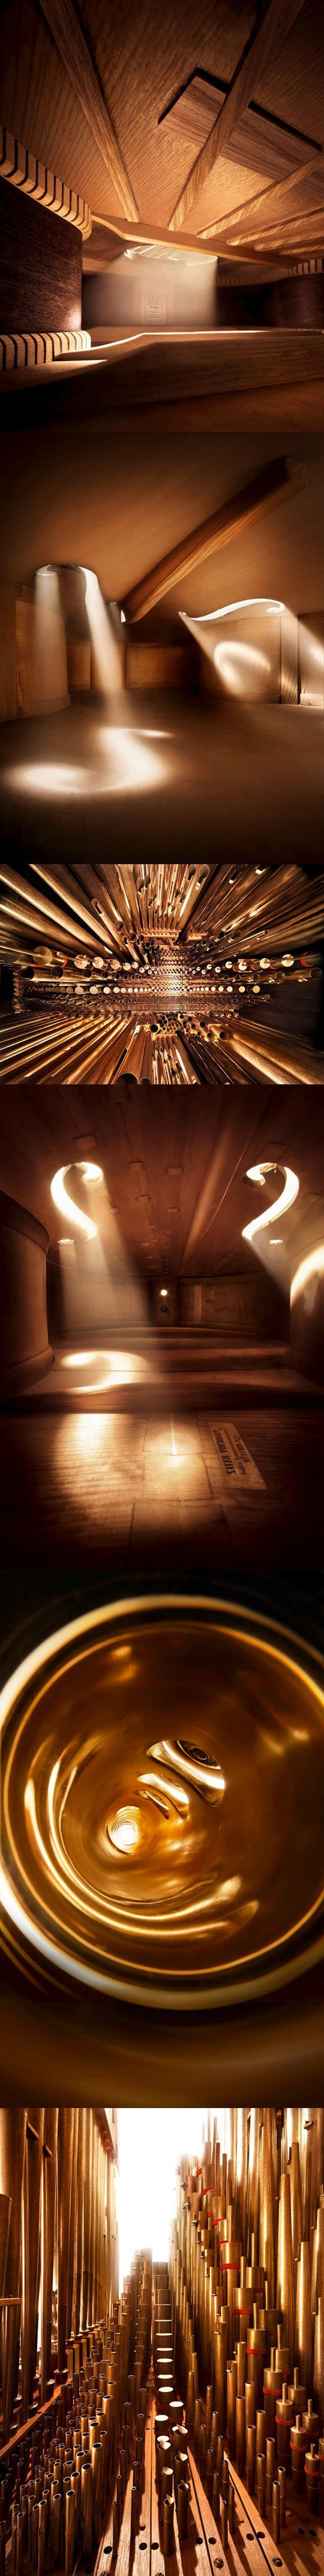 What You See When You Put A Camera Inside Musical Instruments